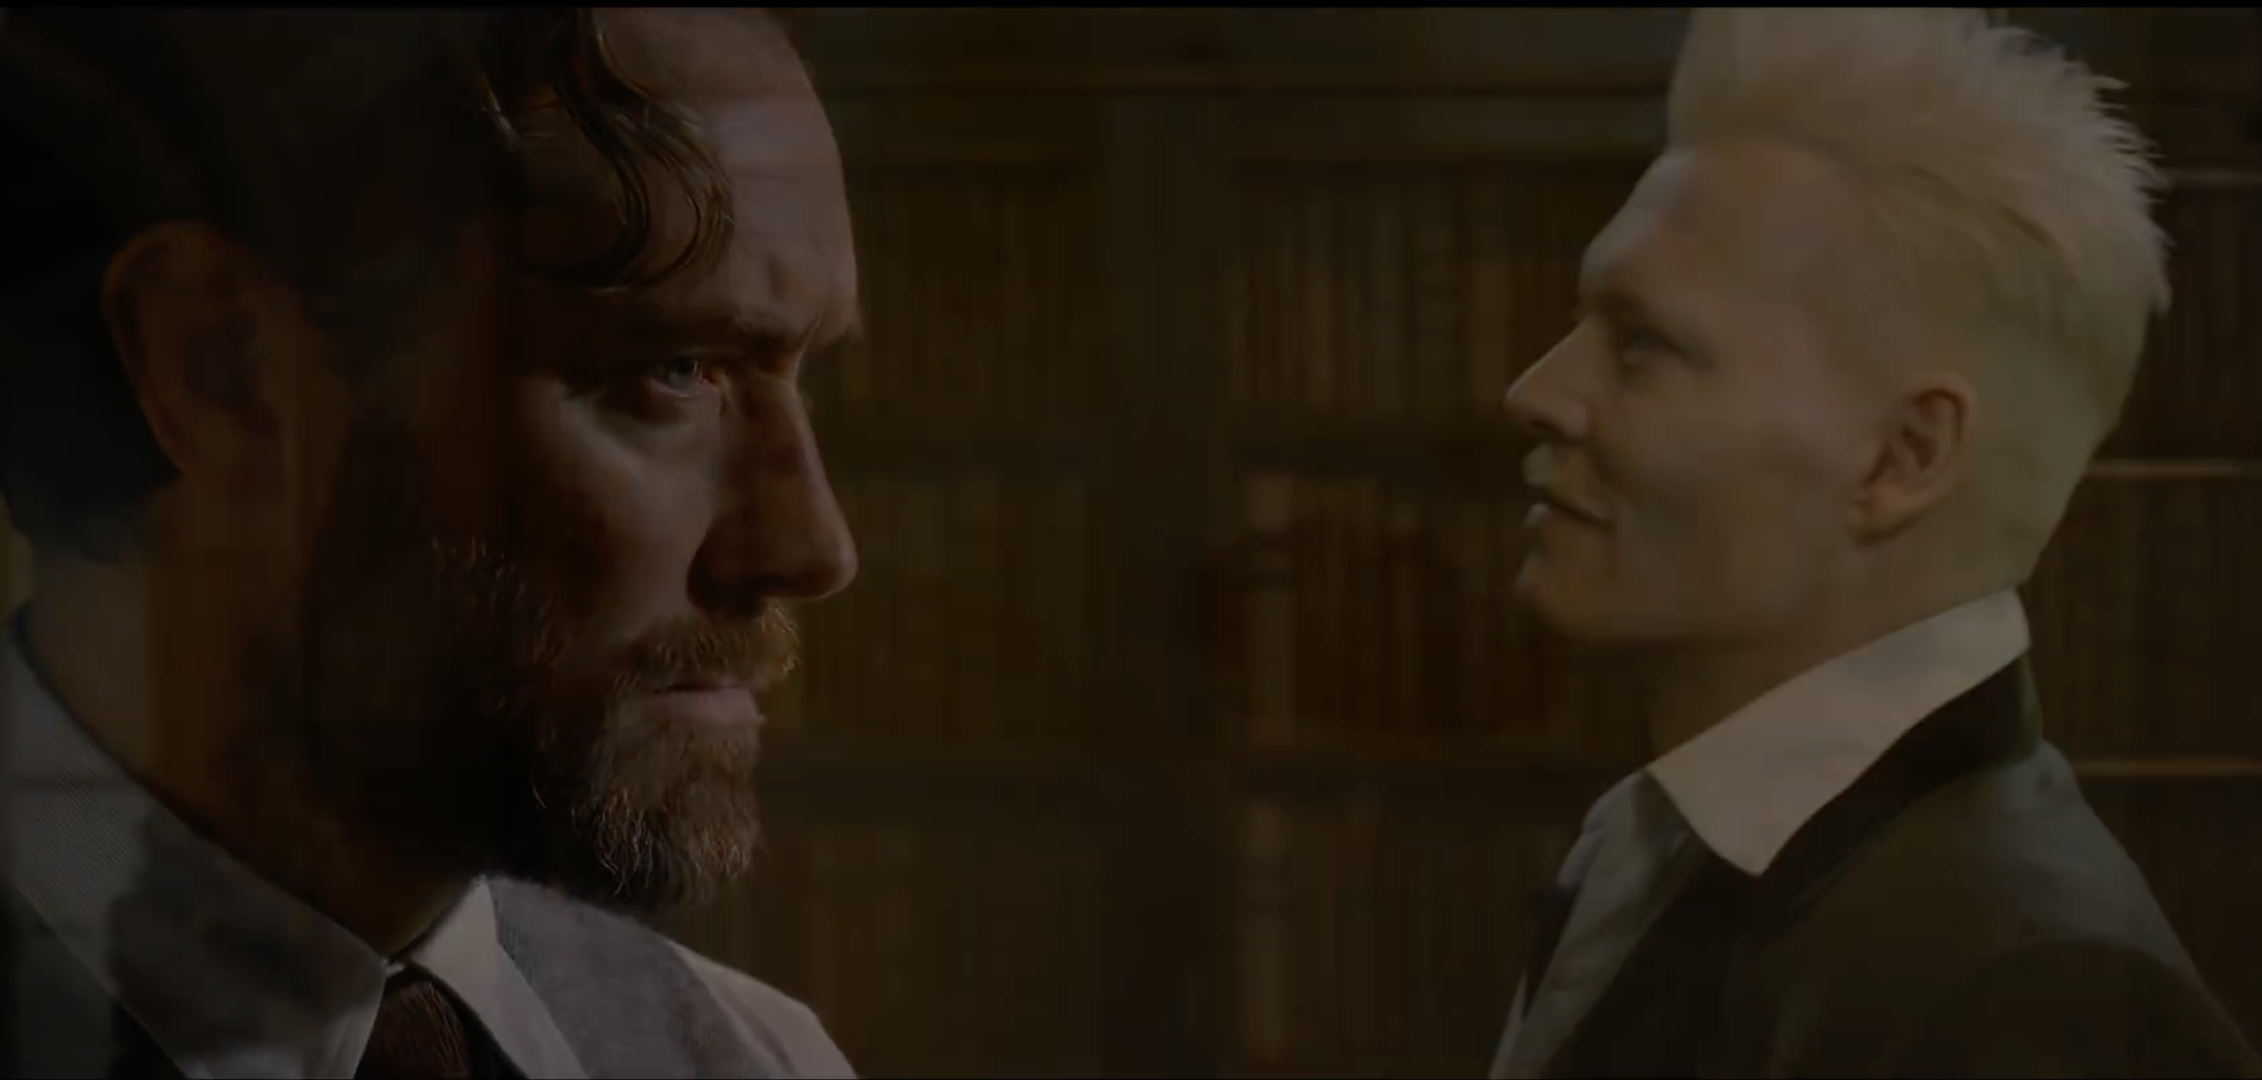 Trailer For Fantastic Beasts The Crimes Of Grindelwald Premieres At